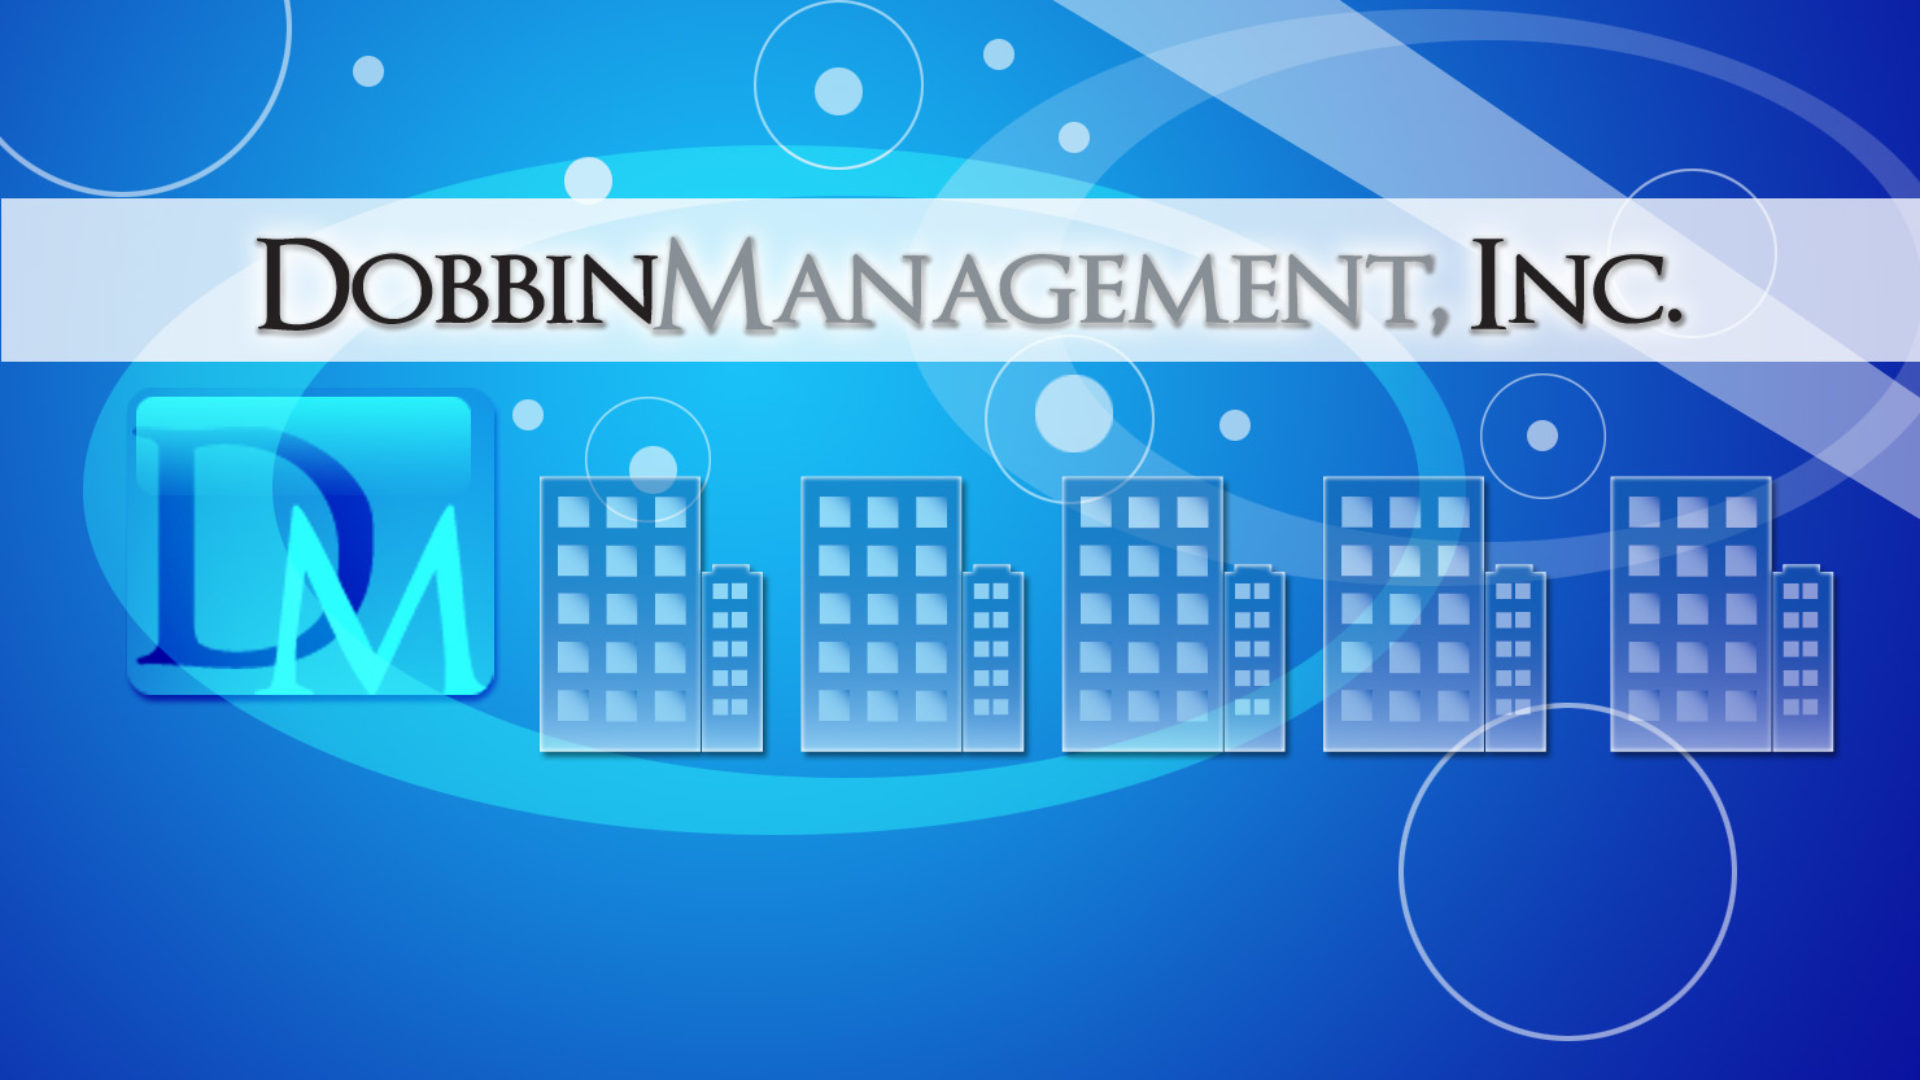 Dobbin Management, Inc.